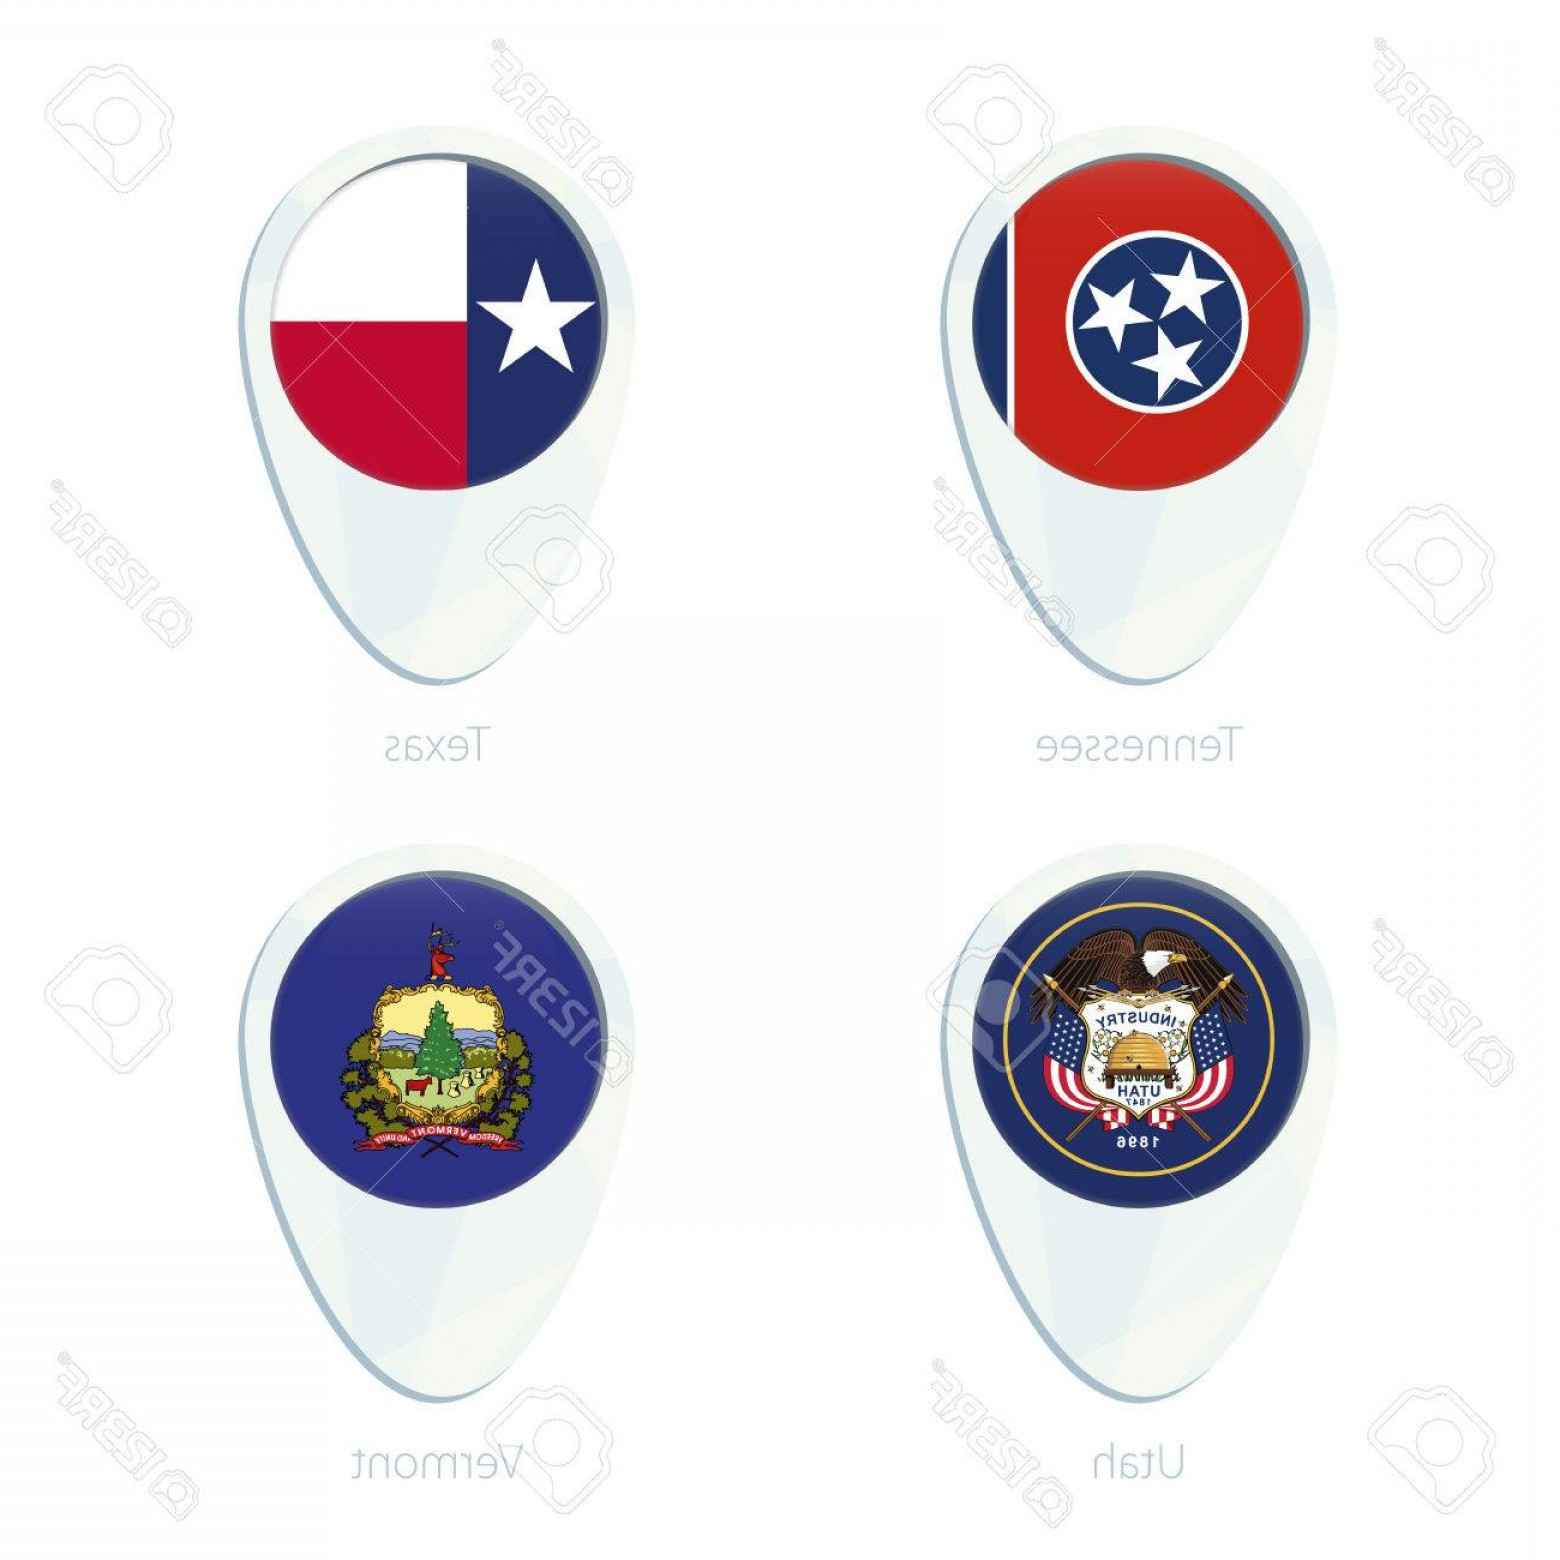 Tennessee Flag Vector: Photostock Vector Tennessee Texas Utah Vermont Flag Location Map Pin Icon Tennessee State Flag Texas State Flag Utah S